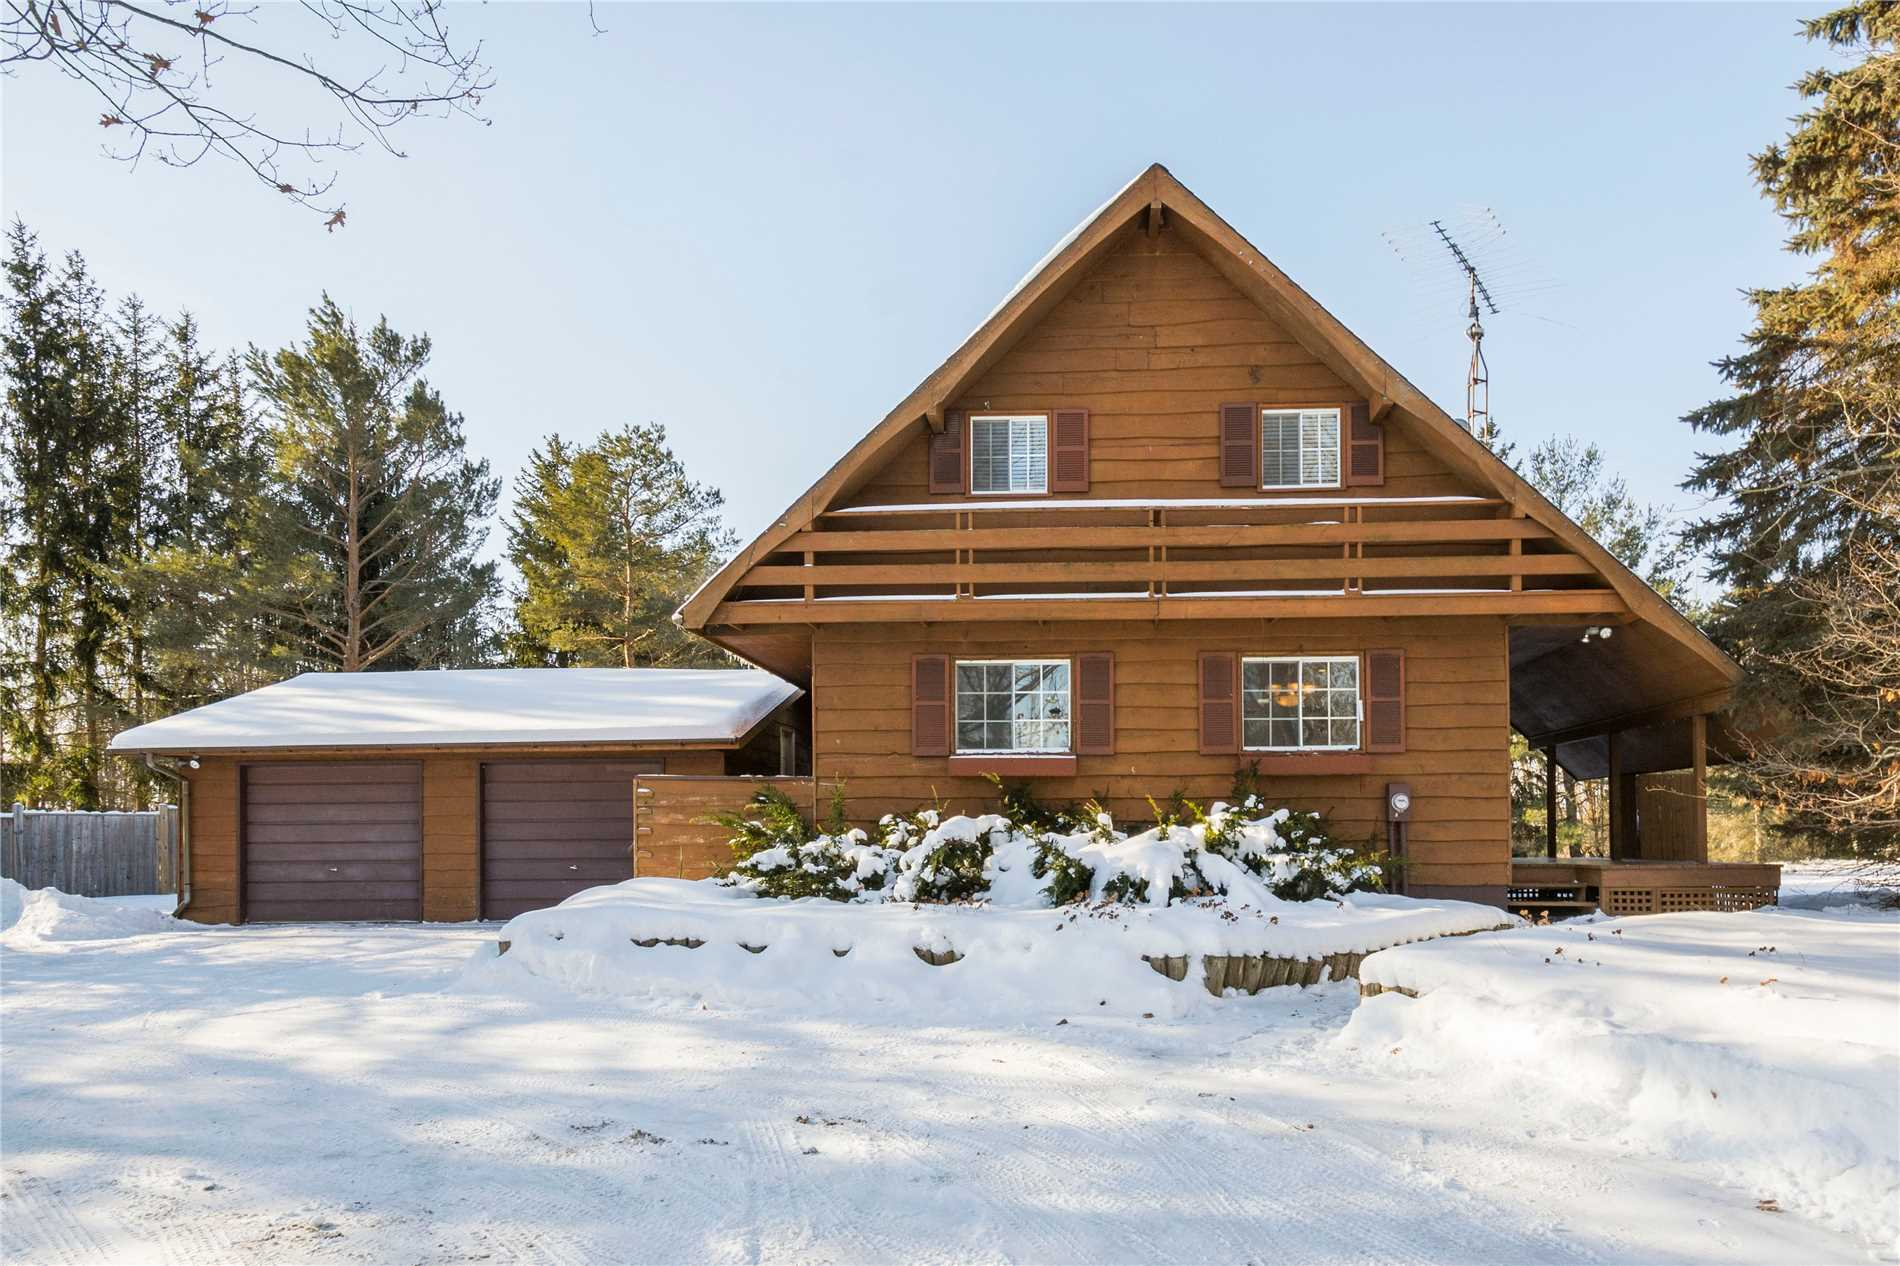 3 Bedroom country home in Trent hills.  SOLD